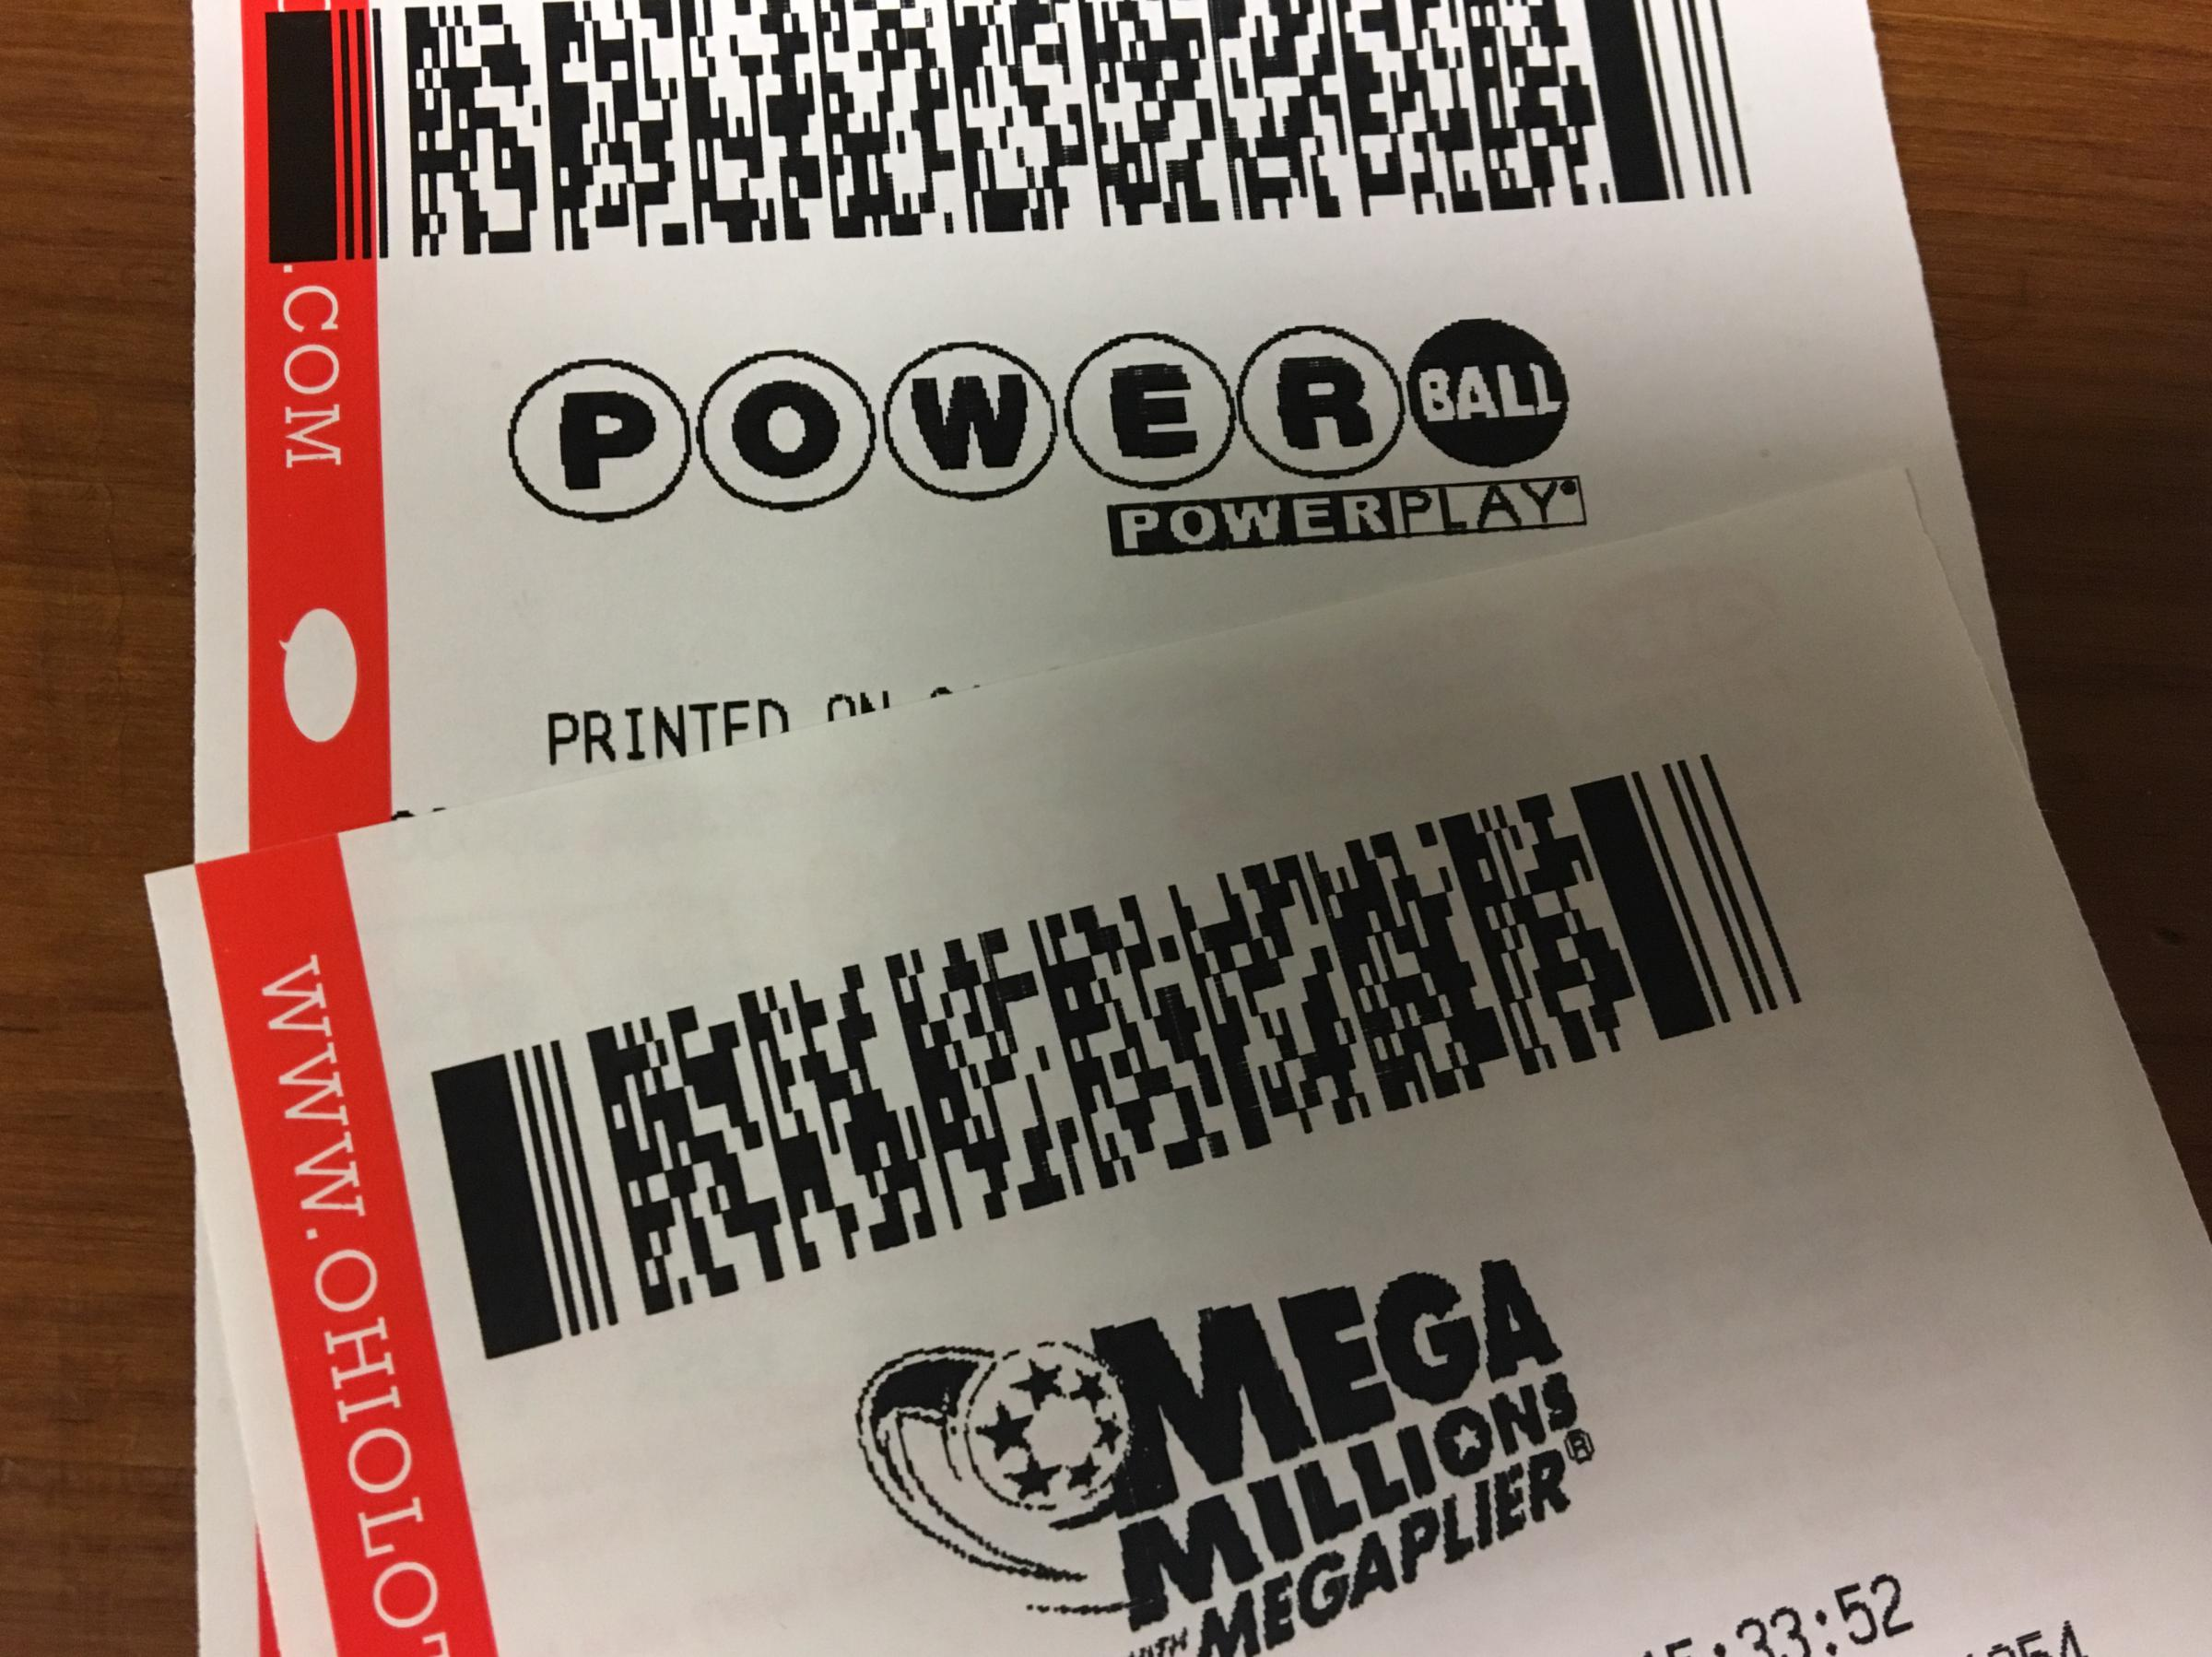 Winning $450M Mega Millions ticket sold in Port Richey